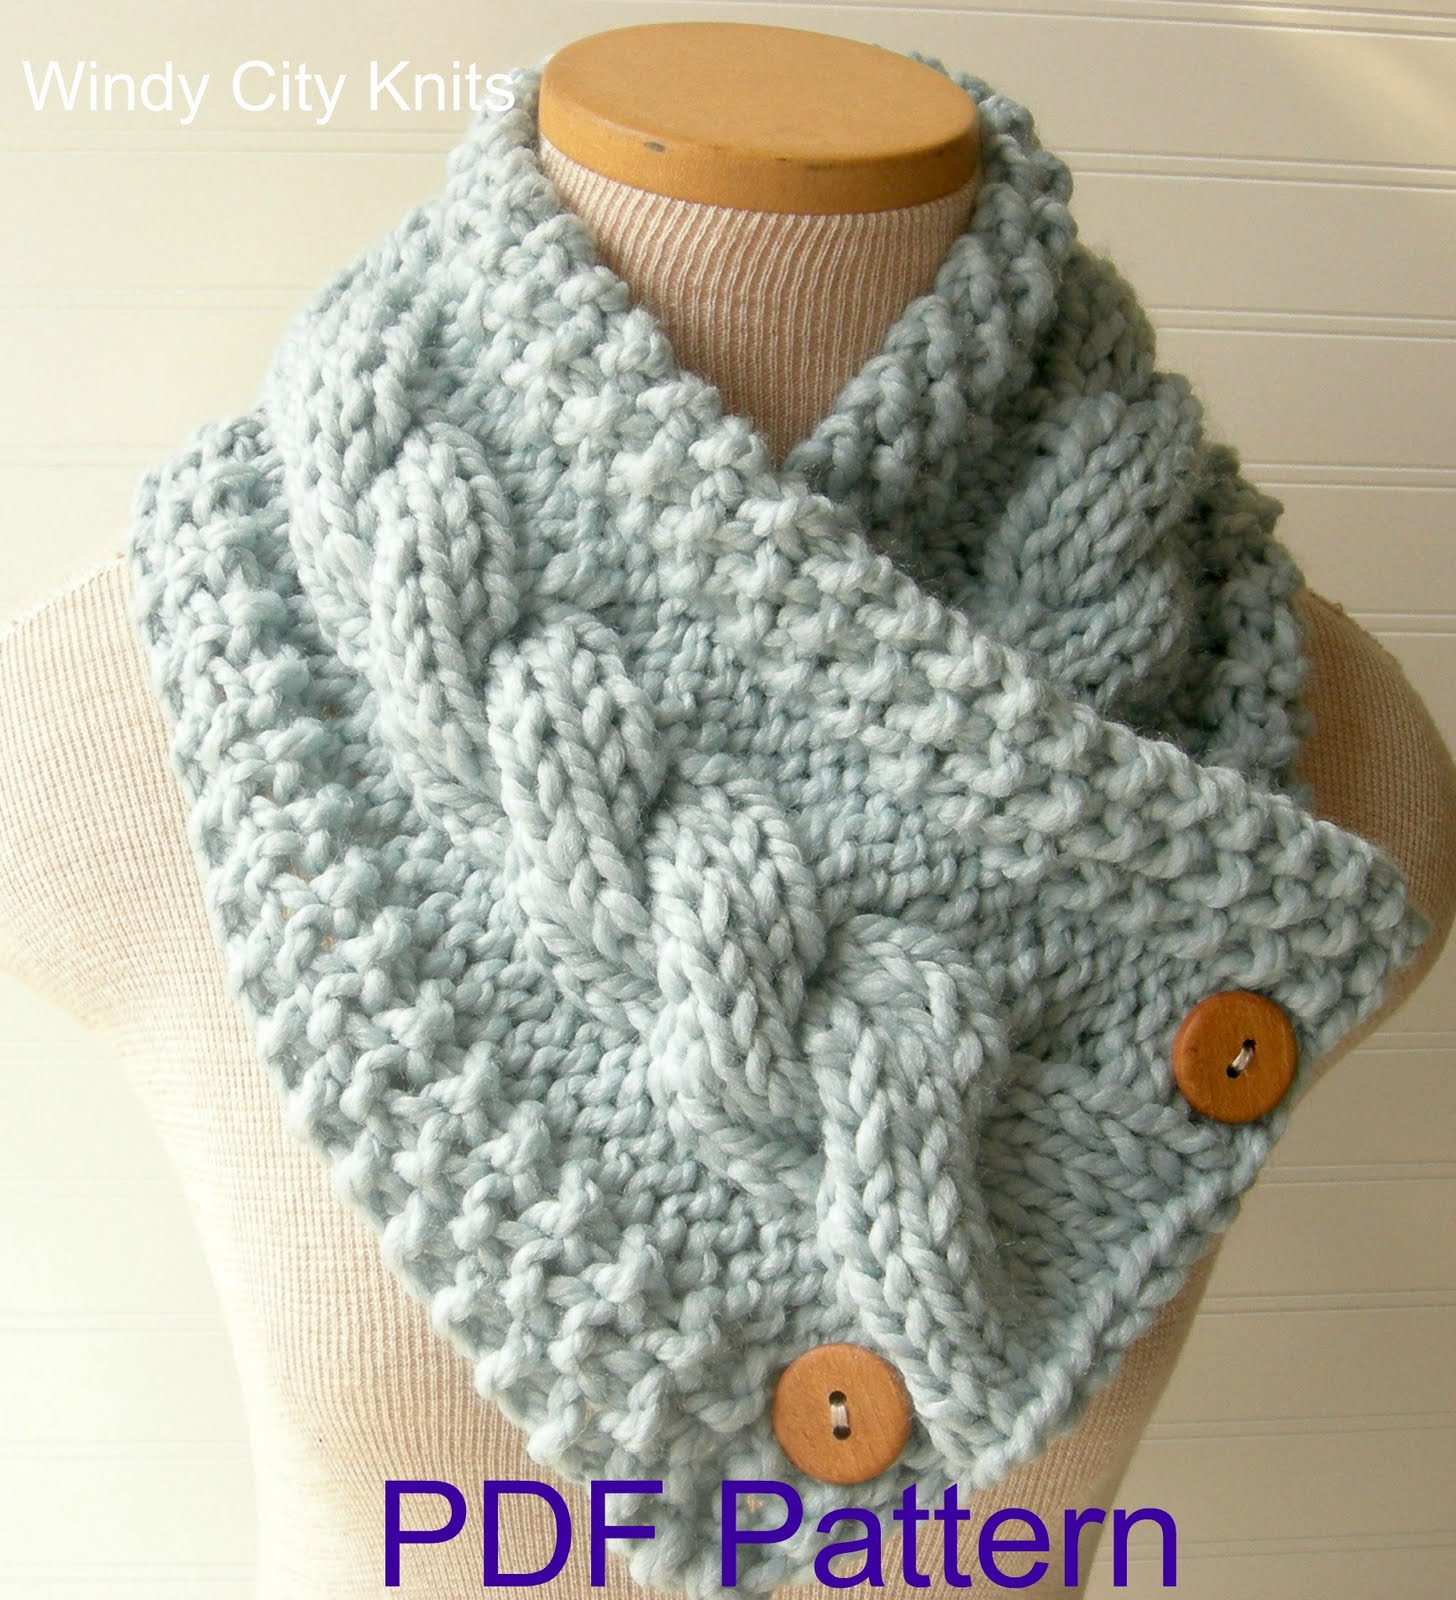 Free Crochet Pattern For Cable Scarf : WindyCityKnits: Knit Cable Cowl Scarf Pattern Pdf